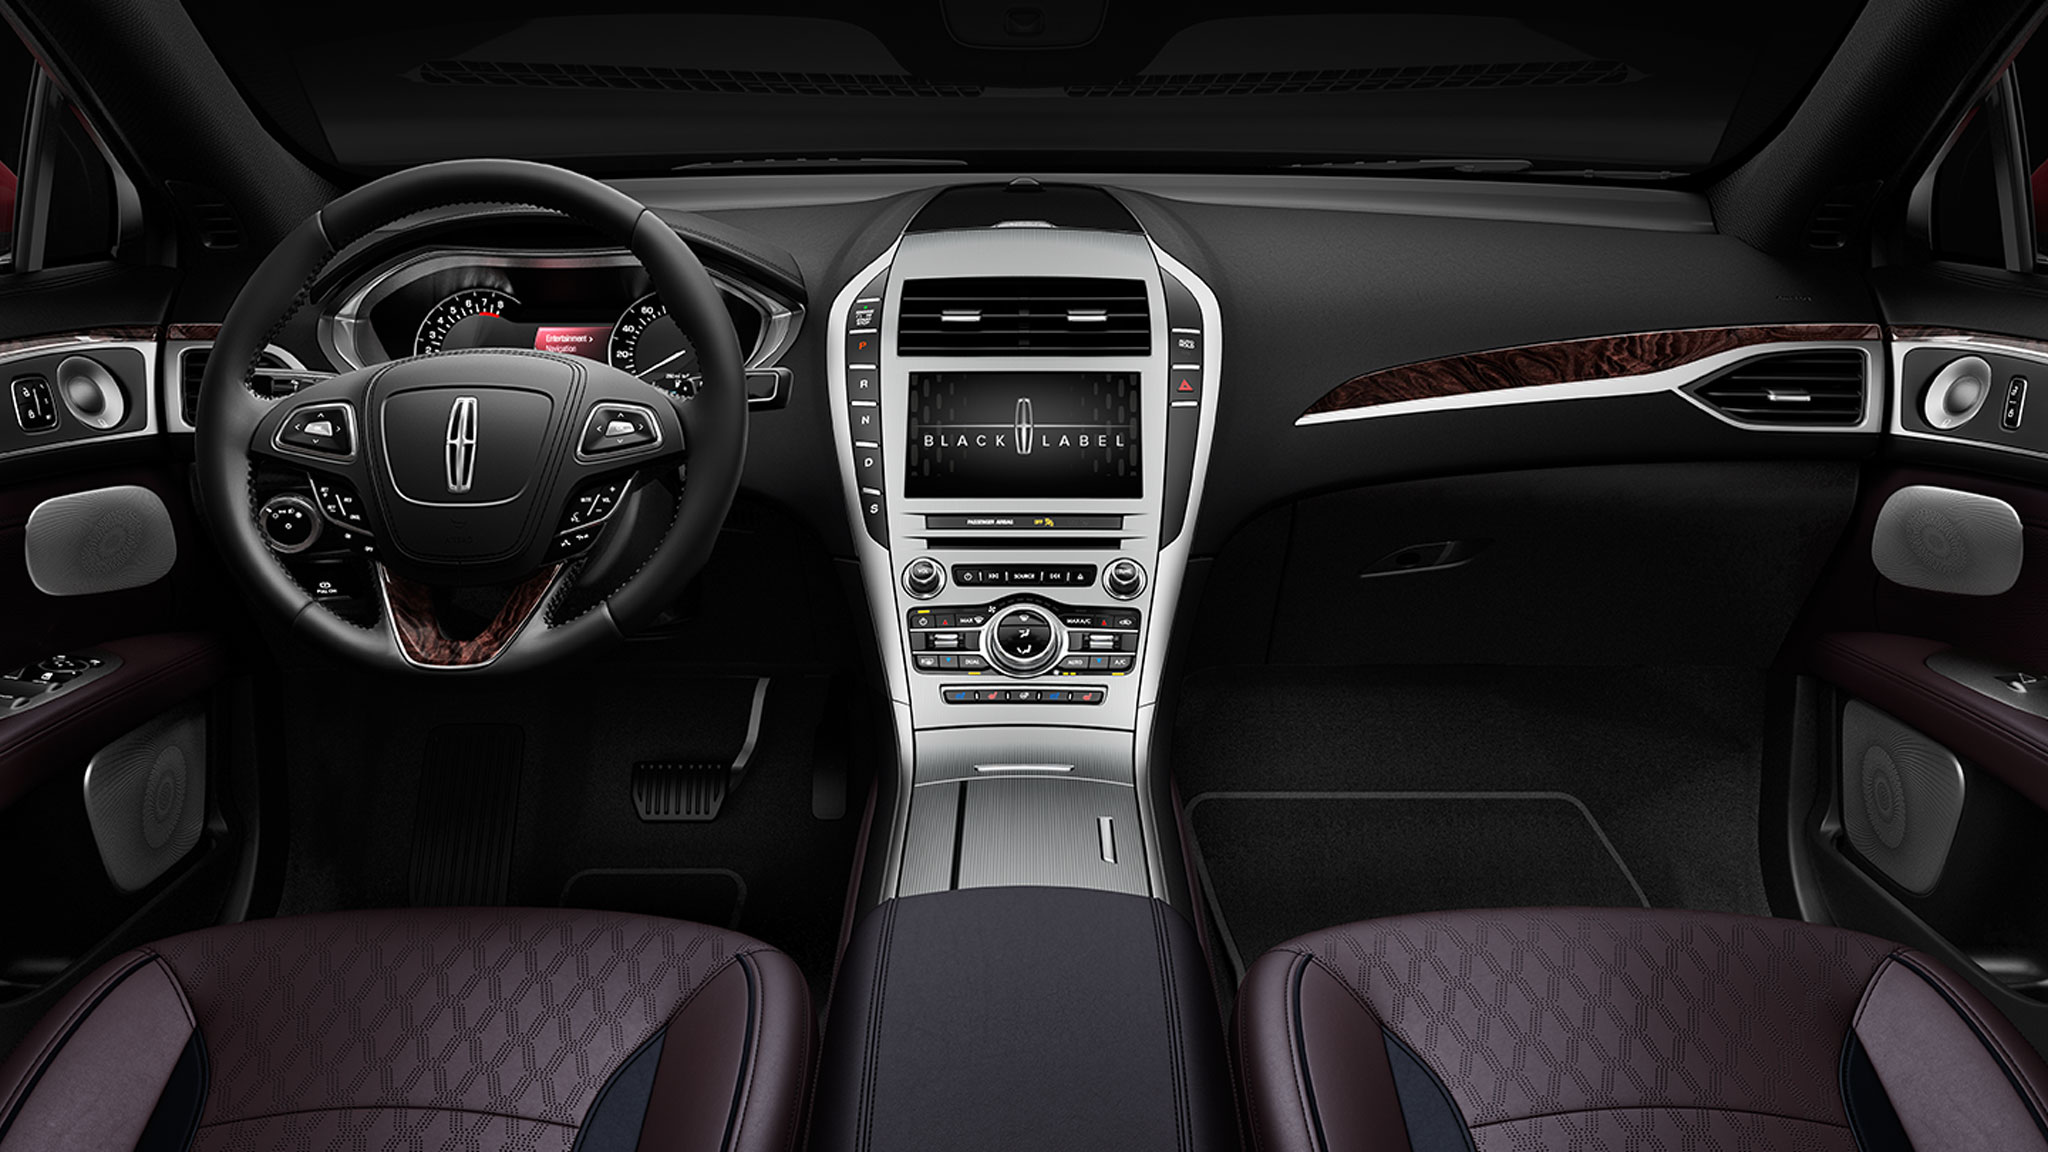 New Lincoln MKZ Interior image 1